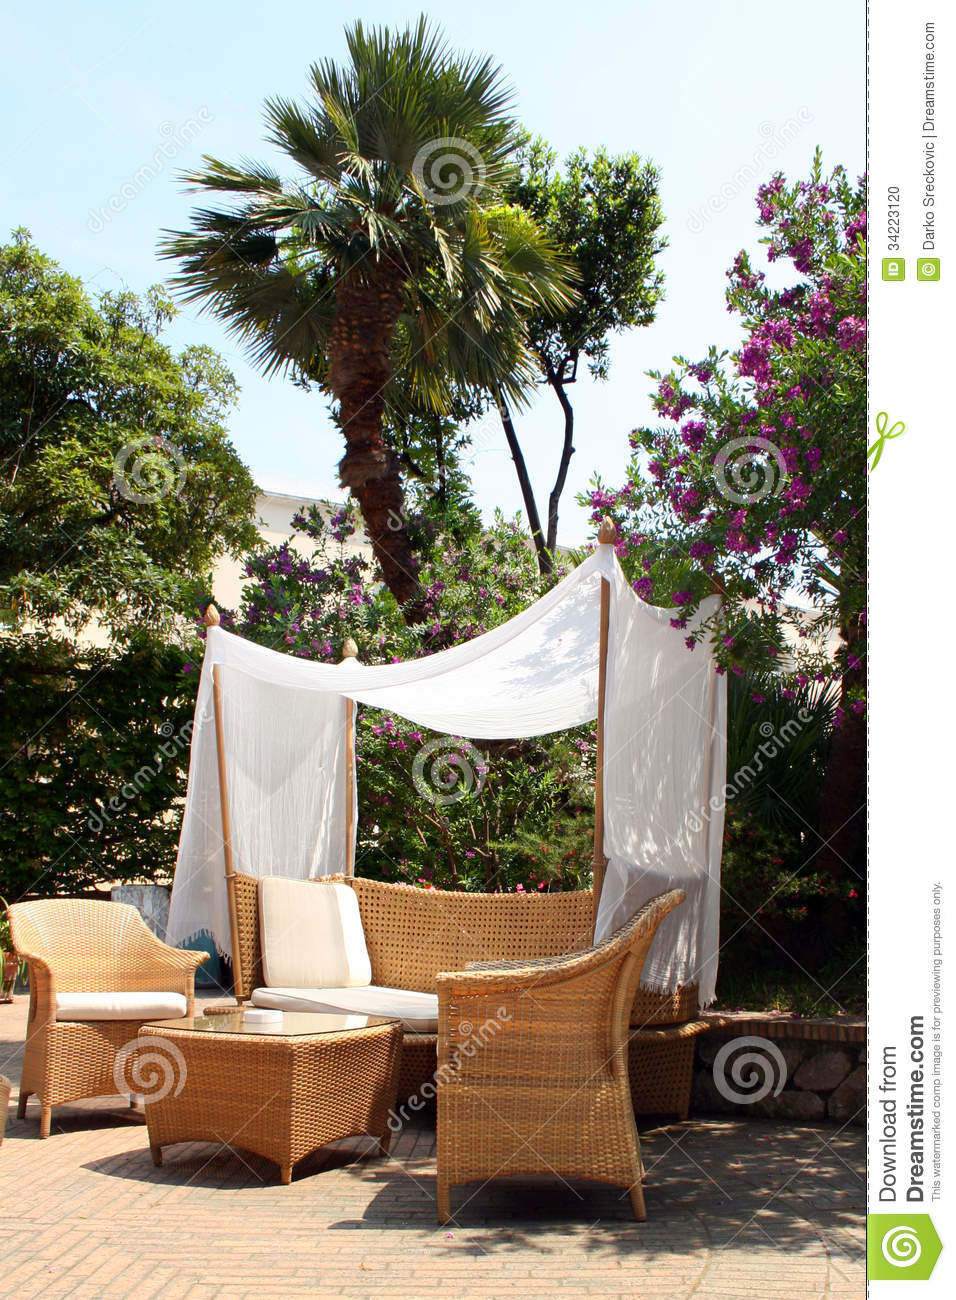 Garden Stock Photo Image 34223120